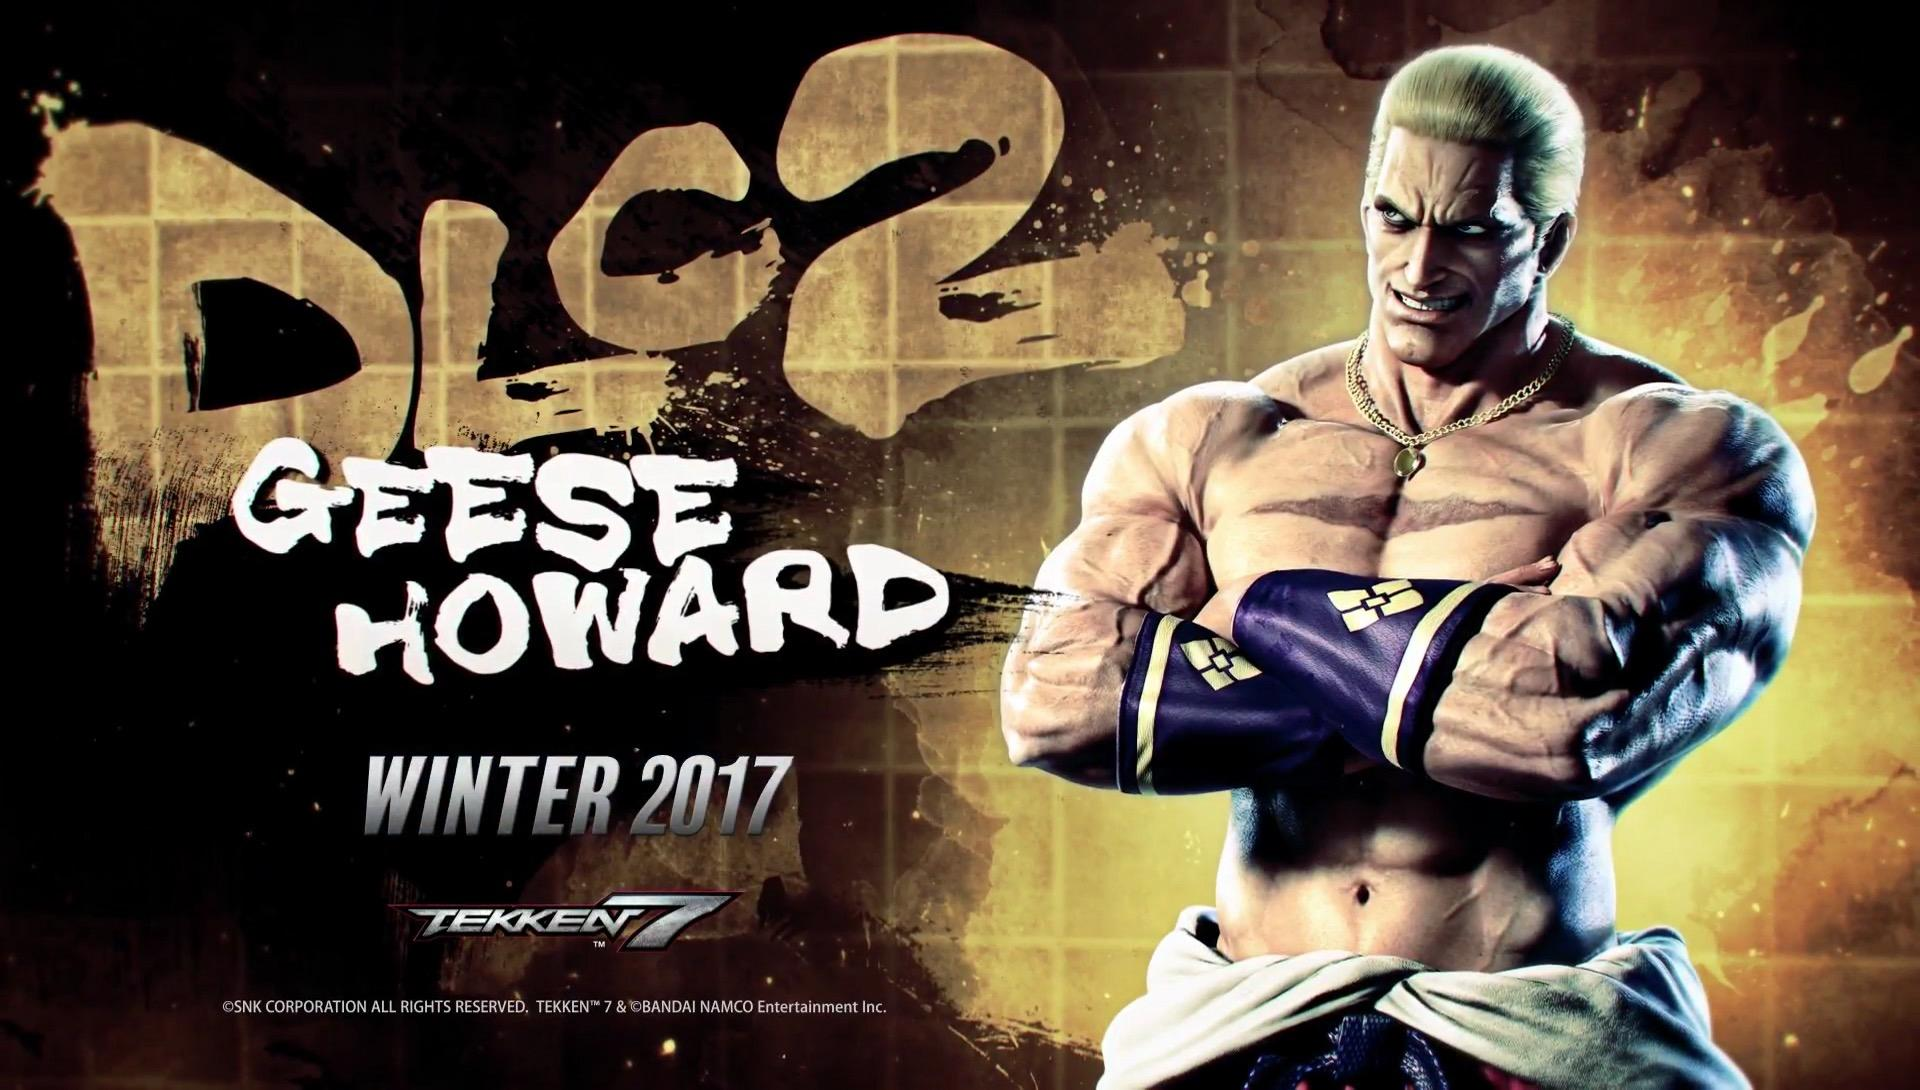 New Tekken 7 DLC Character Revealed, and He is JACKED